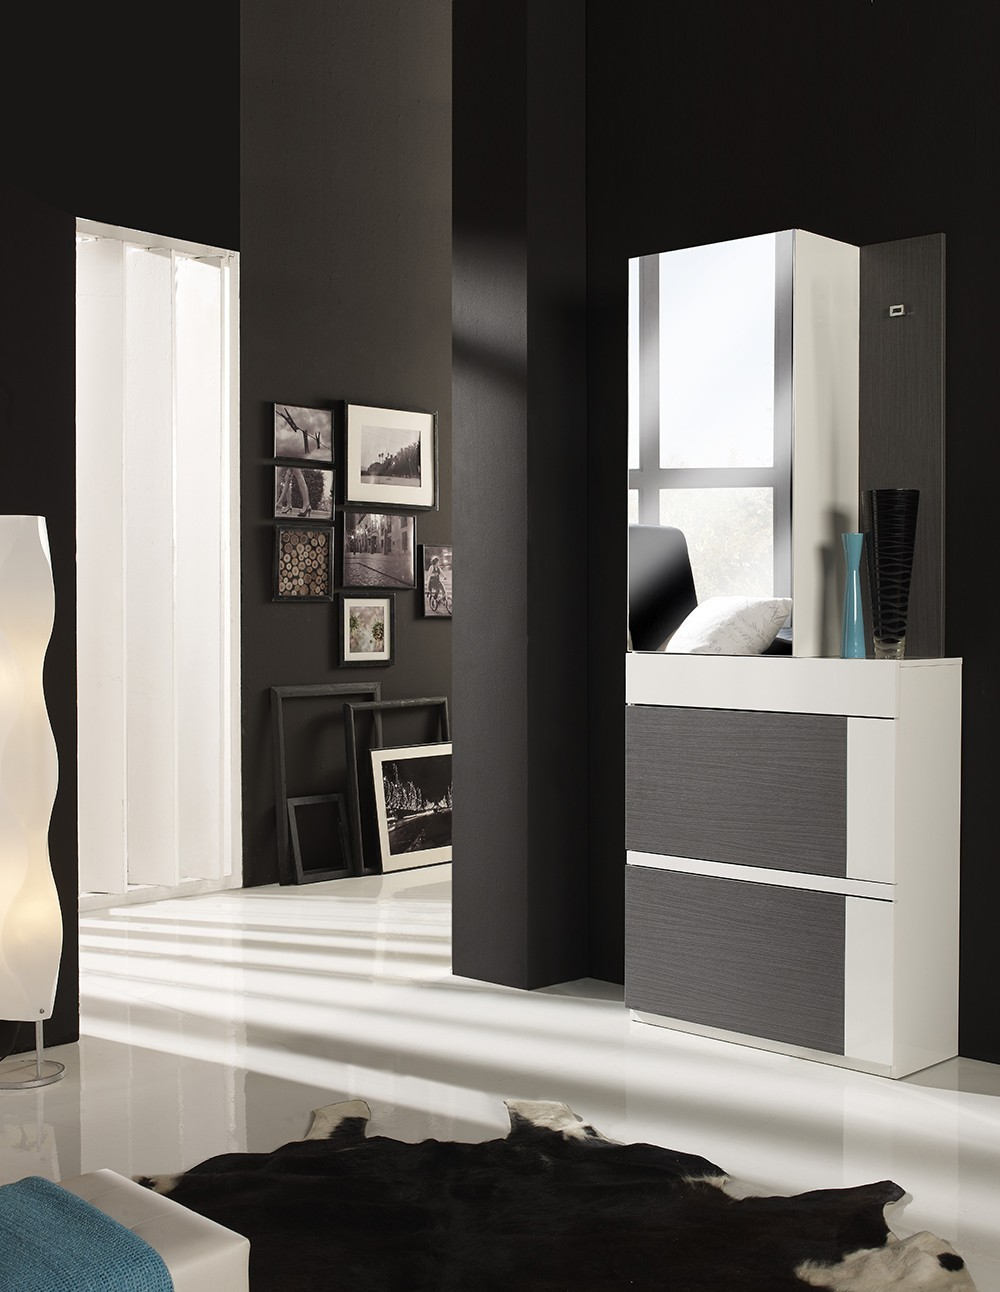 meuble d entre moderne great meuble entree avec banc with meuble d entre moderne elegant. Black Bedroom Furniture Sets. Home Design Ideas